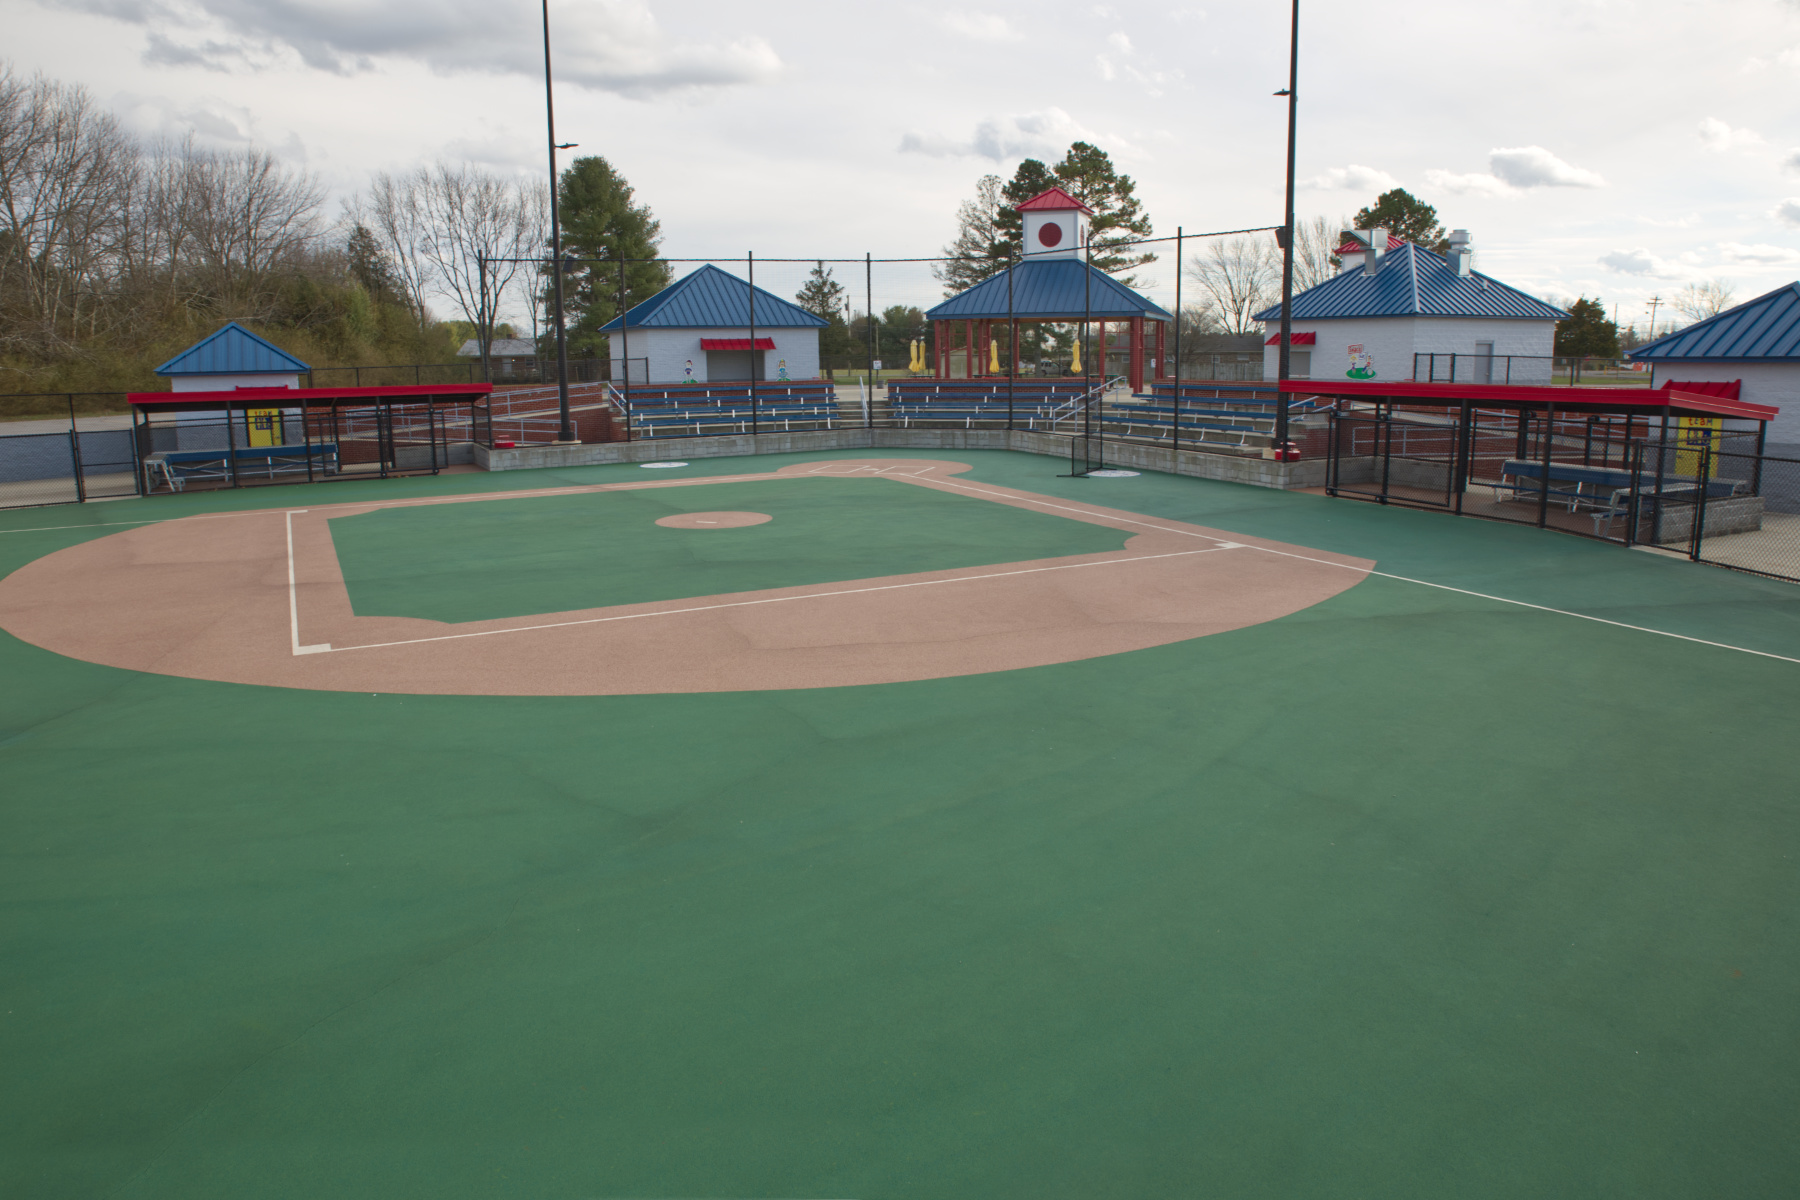 The outfield area of abigail's ball field.